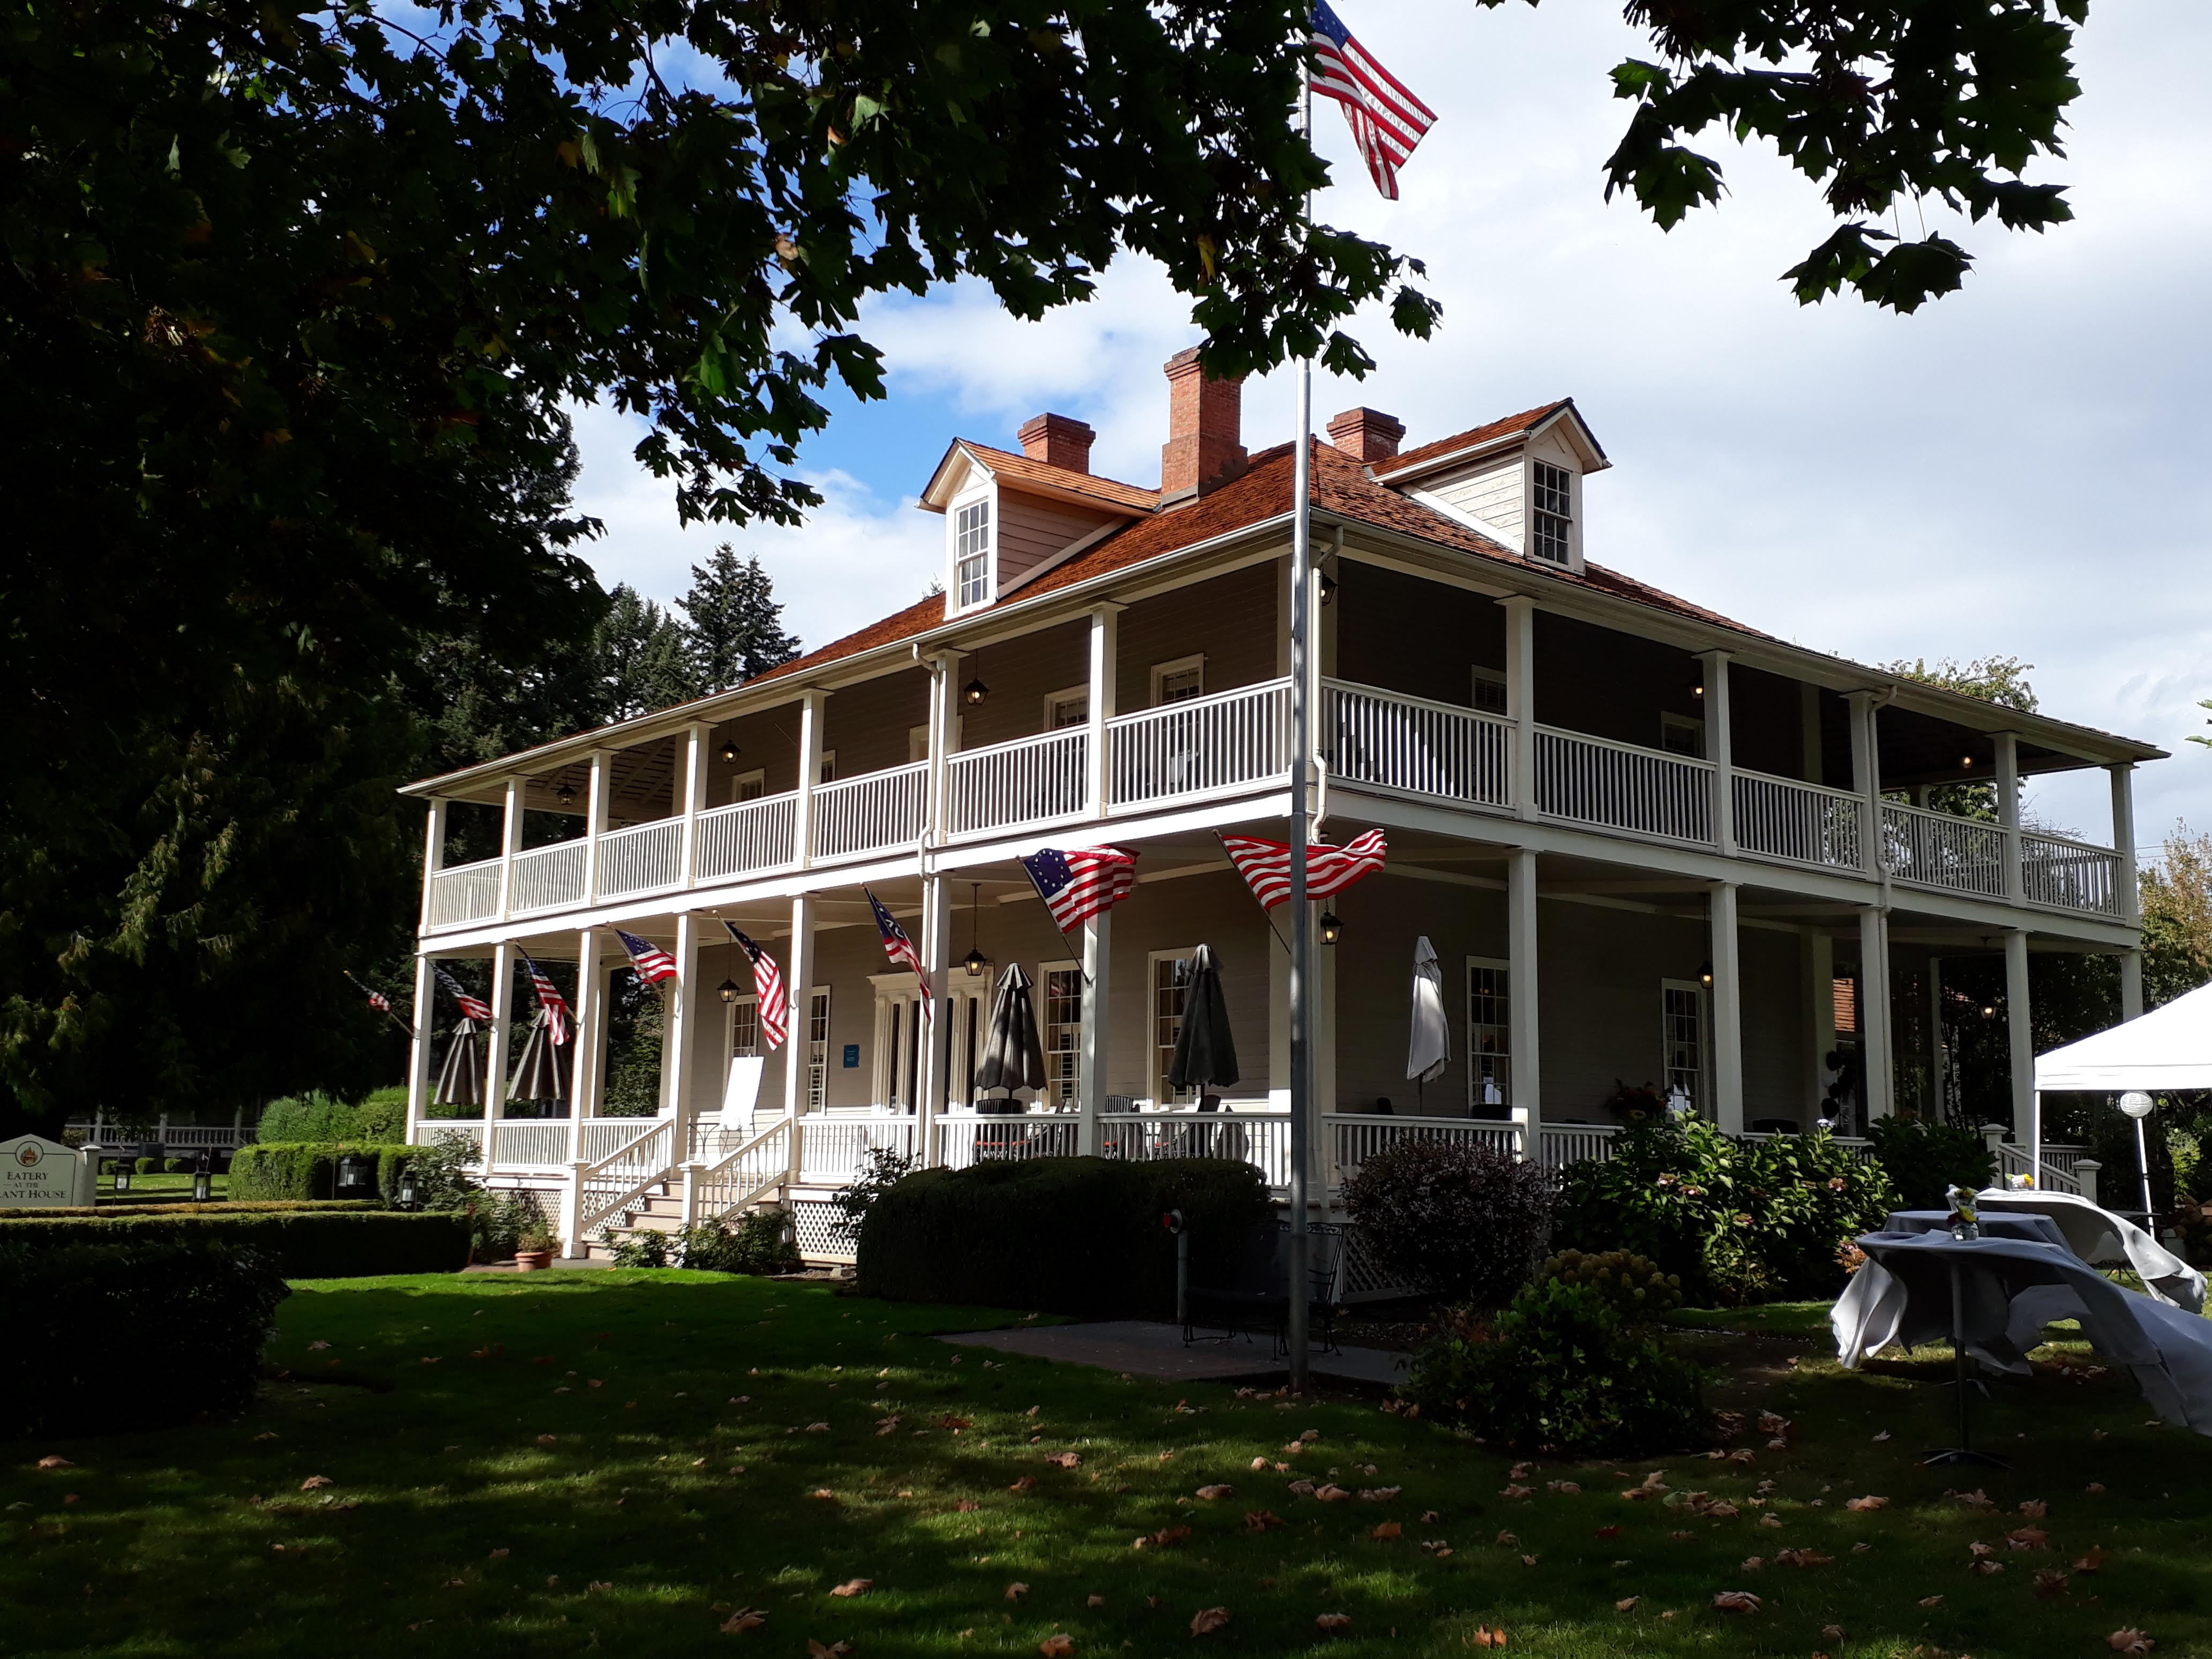 visiting Fort Vancouver - The Grant House